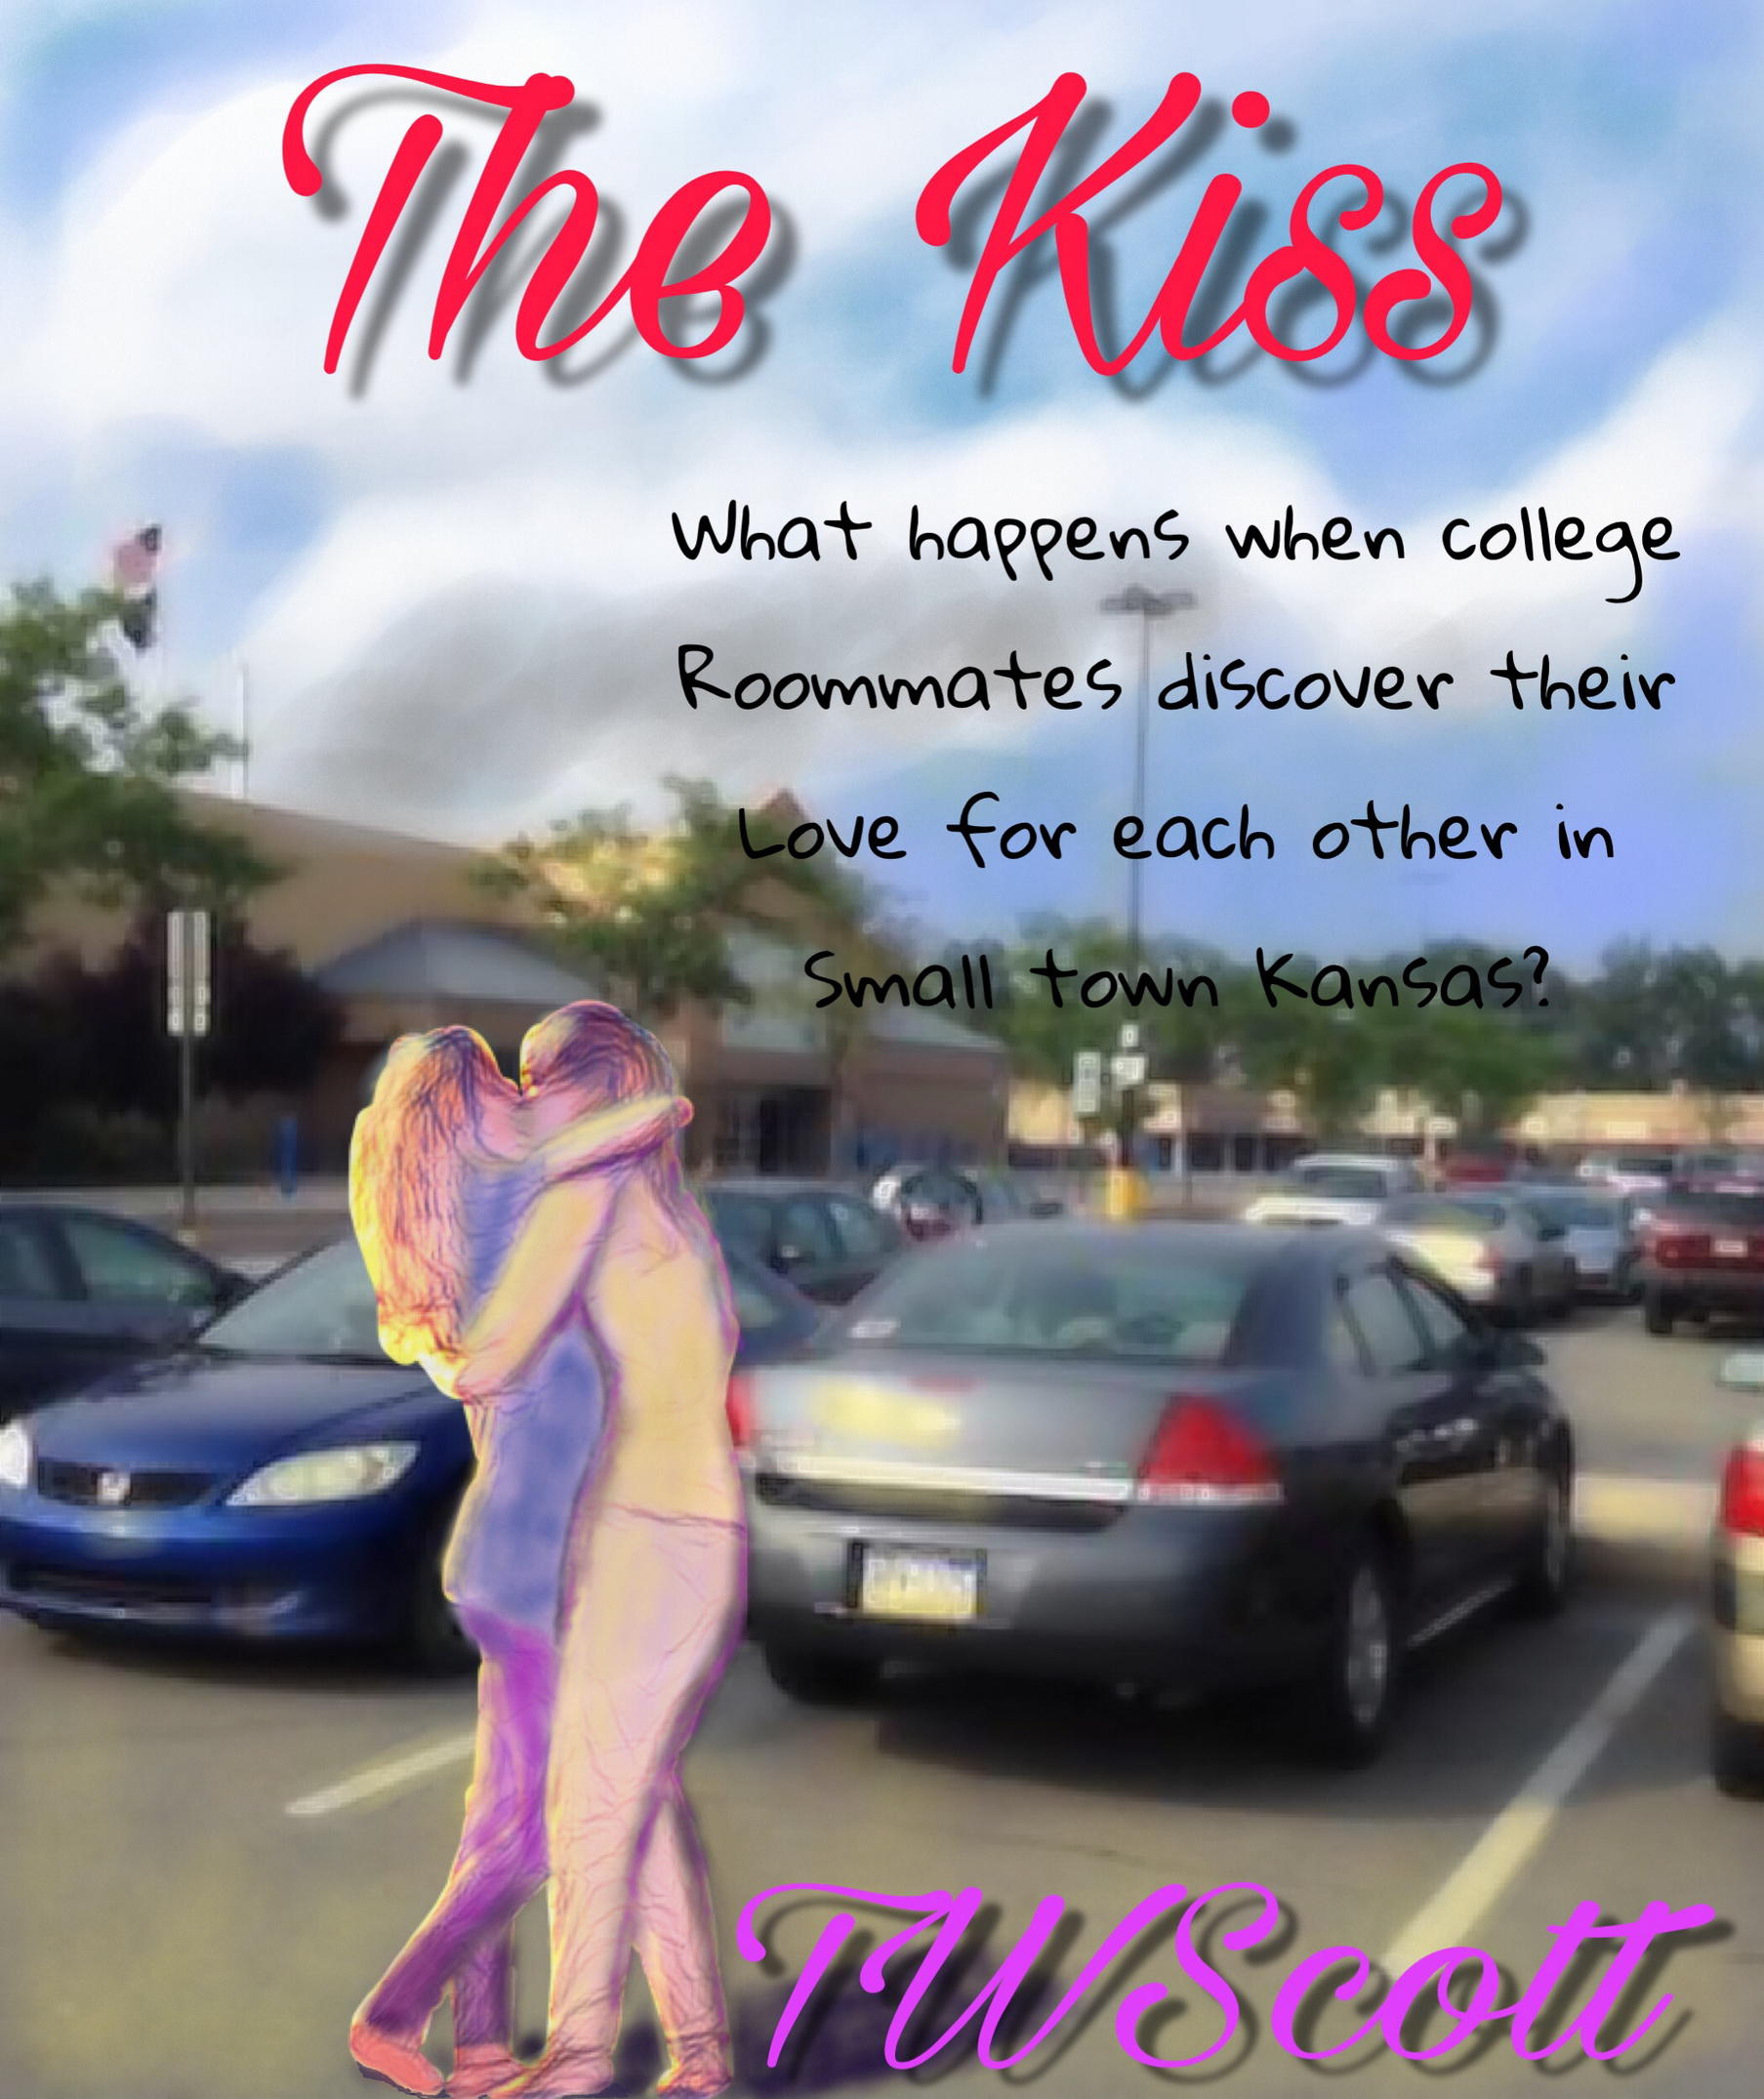 the kiss b - Copy